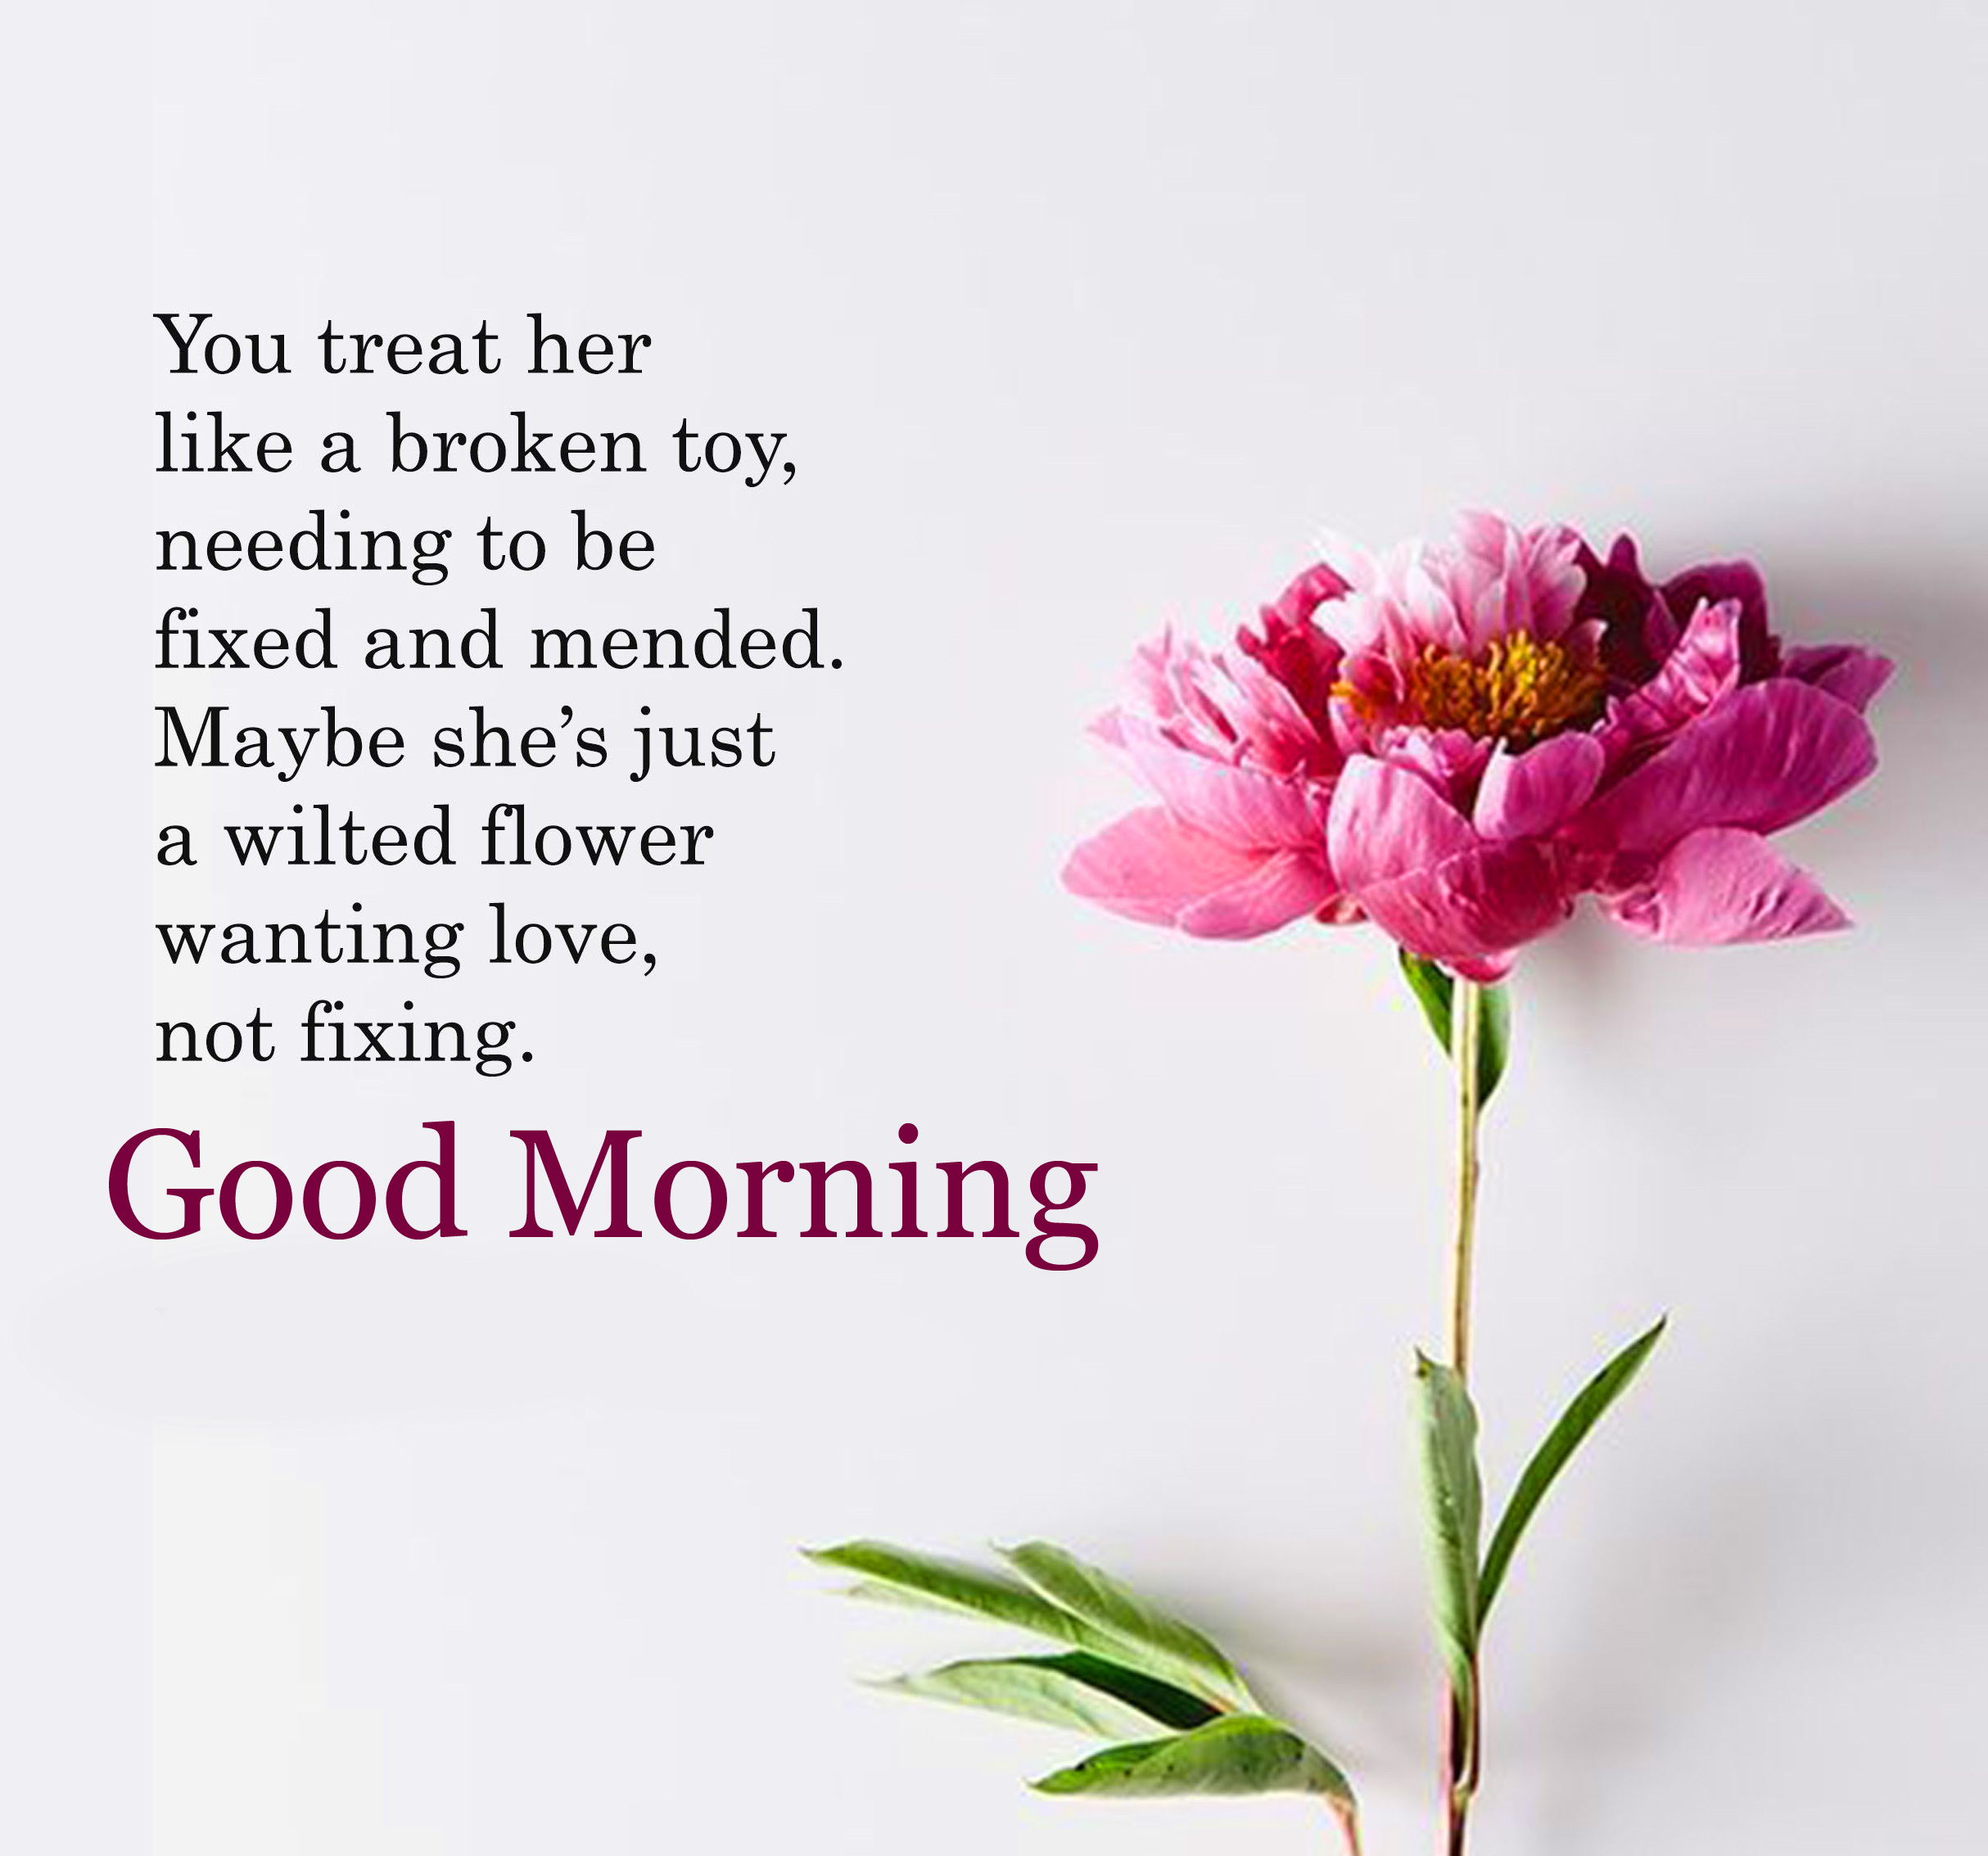 Good Morning Wallpaper With Quotes